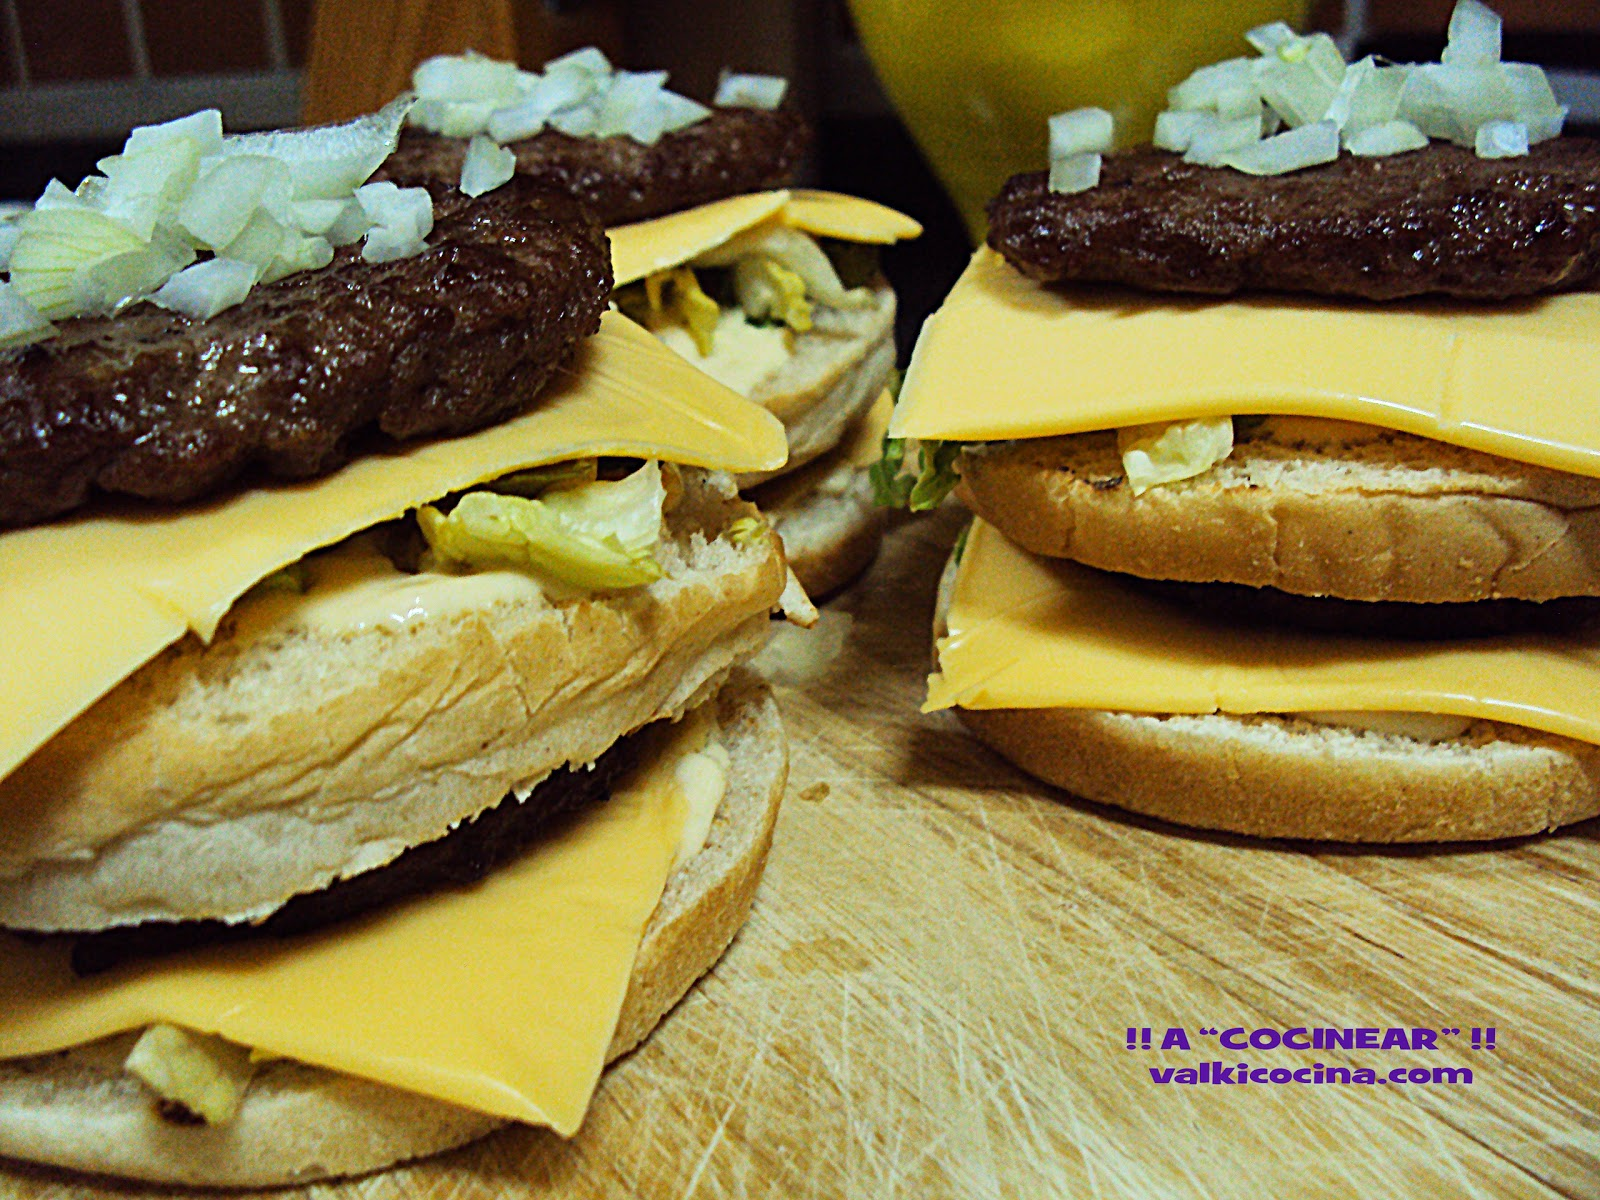 Hamburguesa y salsa Big Mac caseras